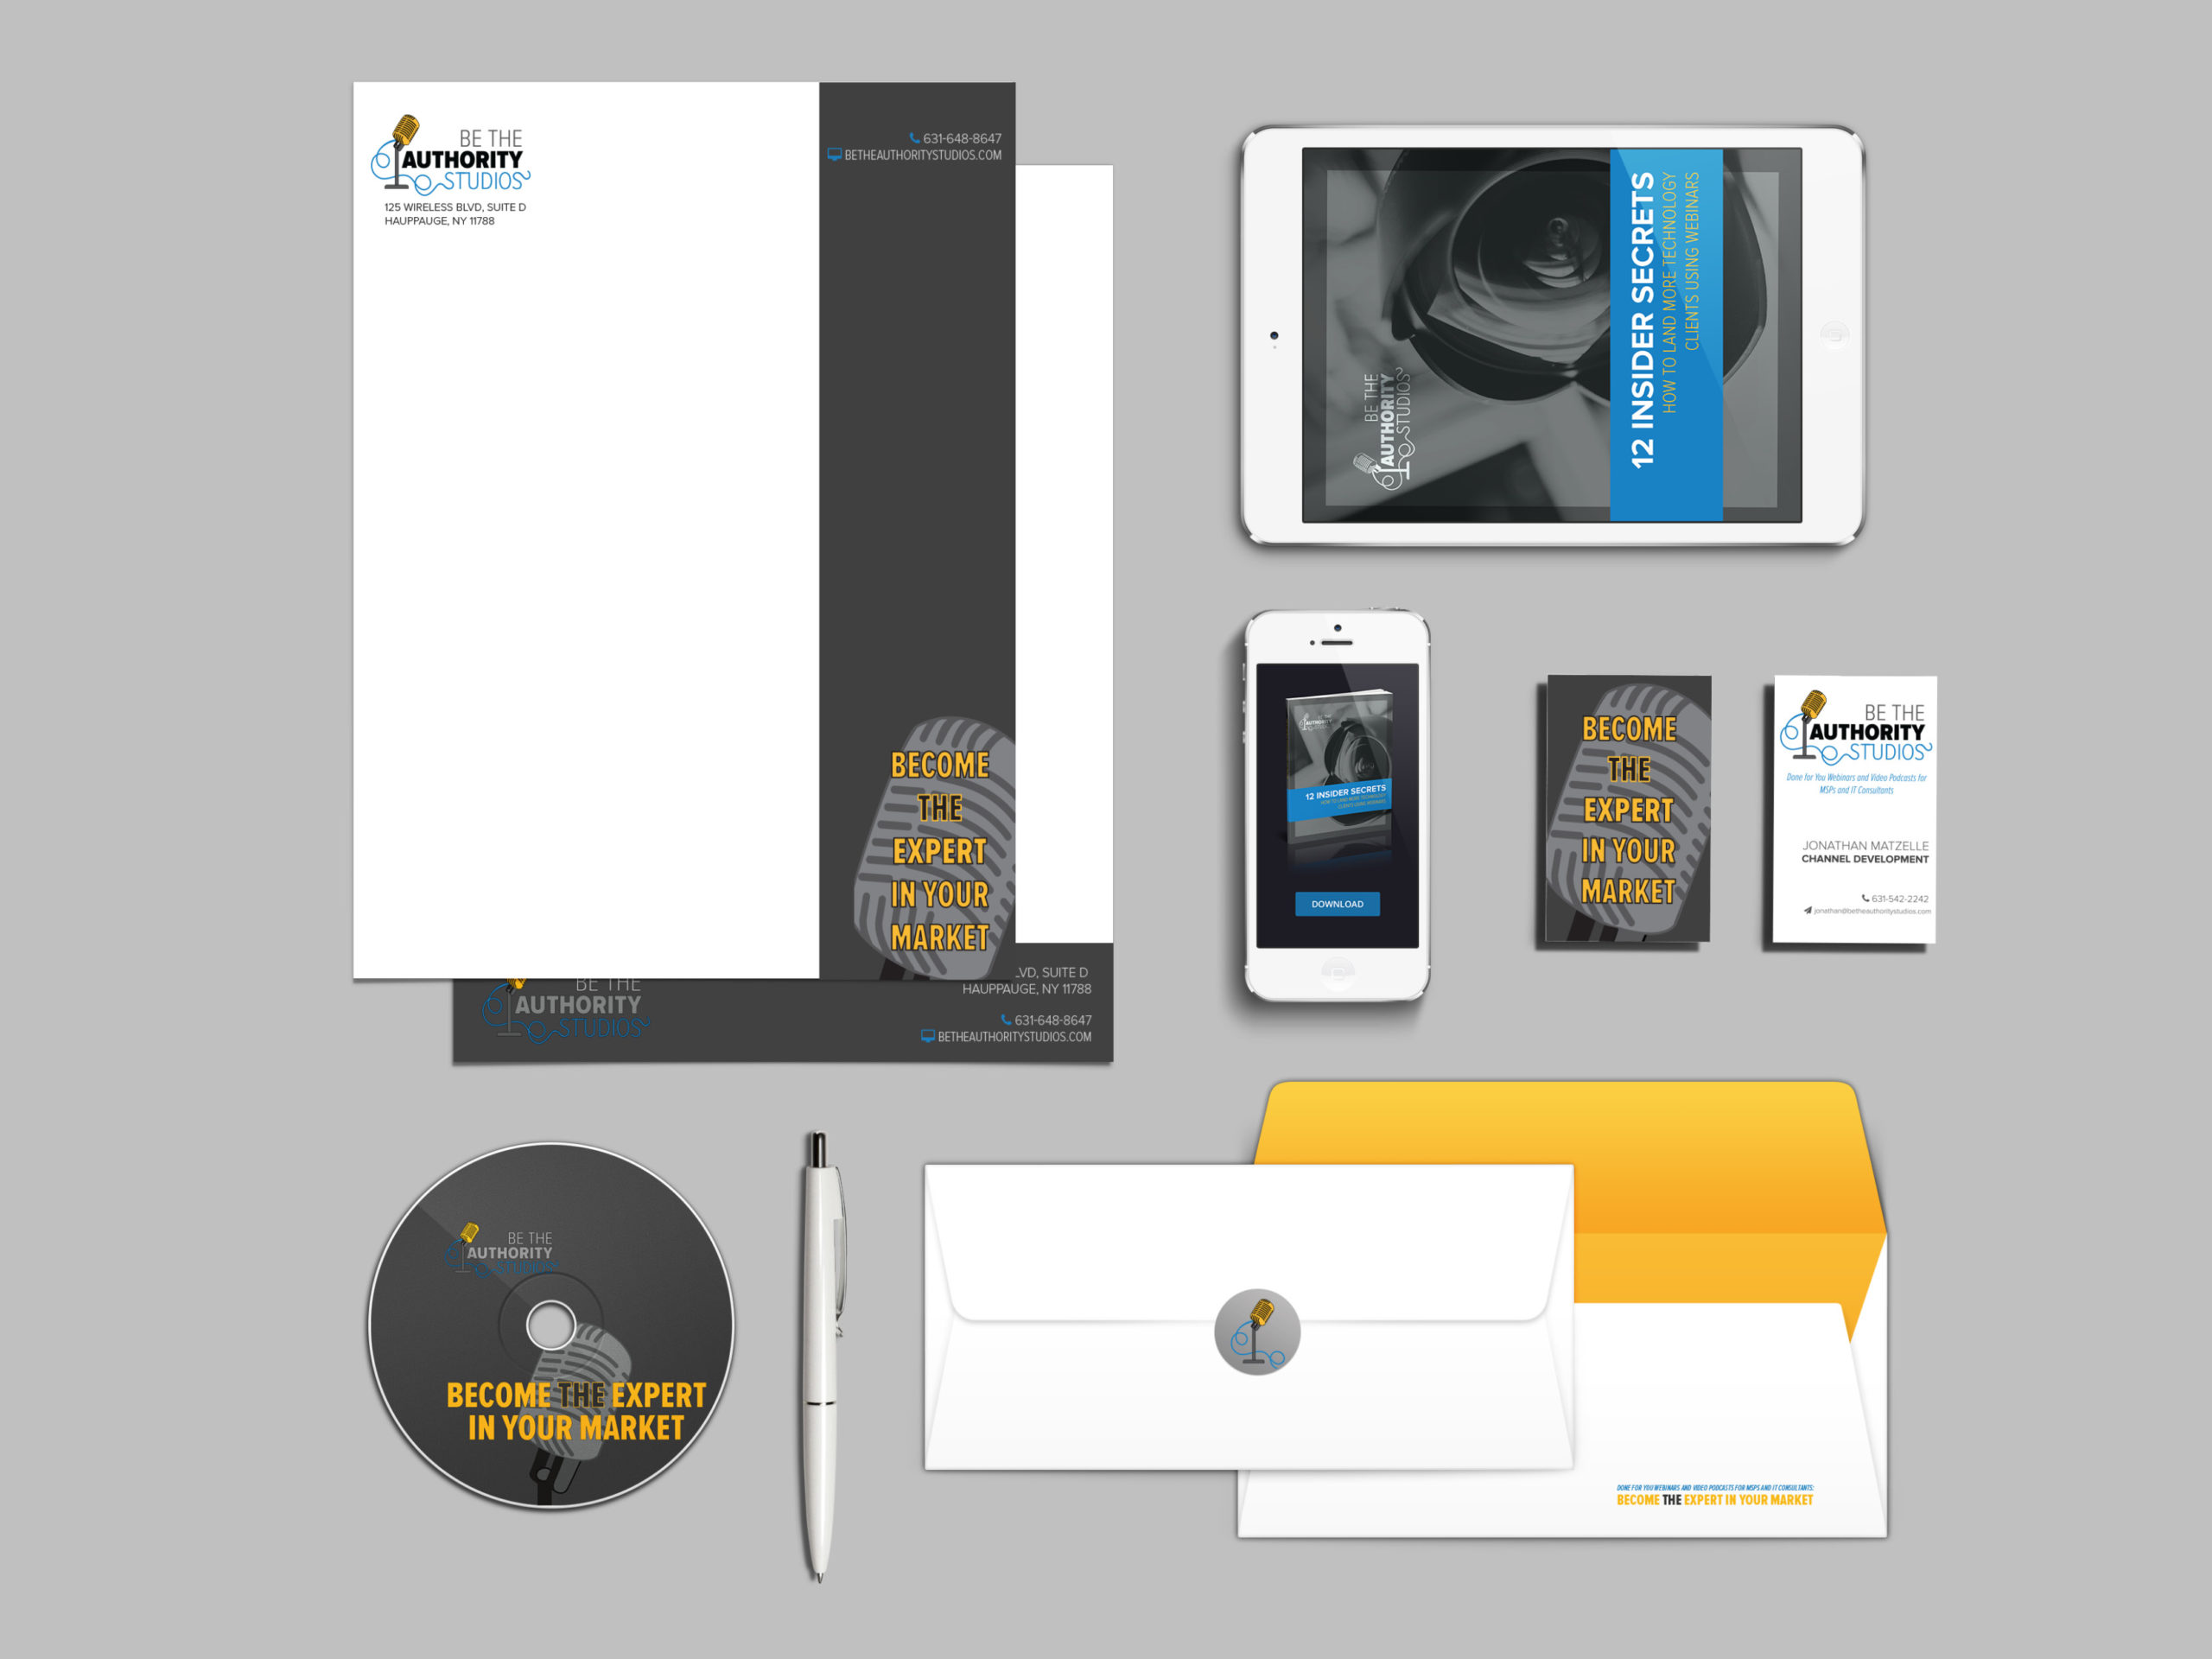 Flat lay including letterhead, envelope, iPad, CD, phone and business cards, all branded with Be The Authority logo.